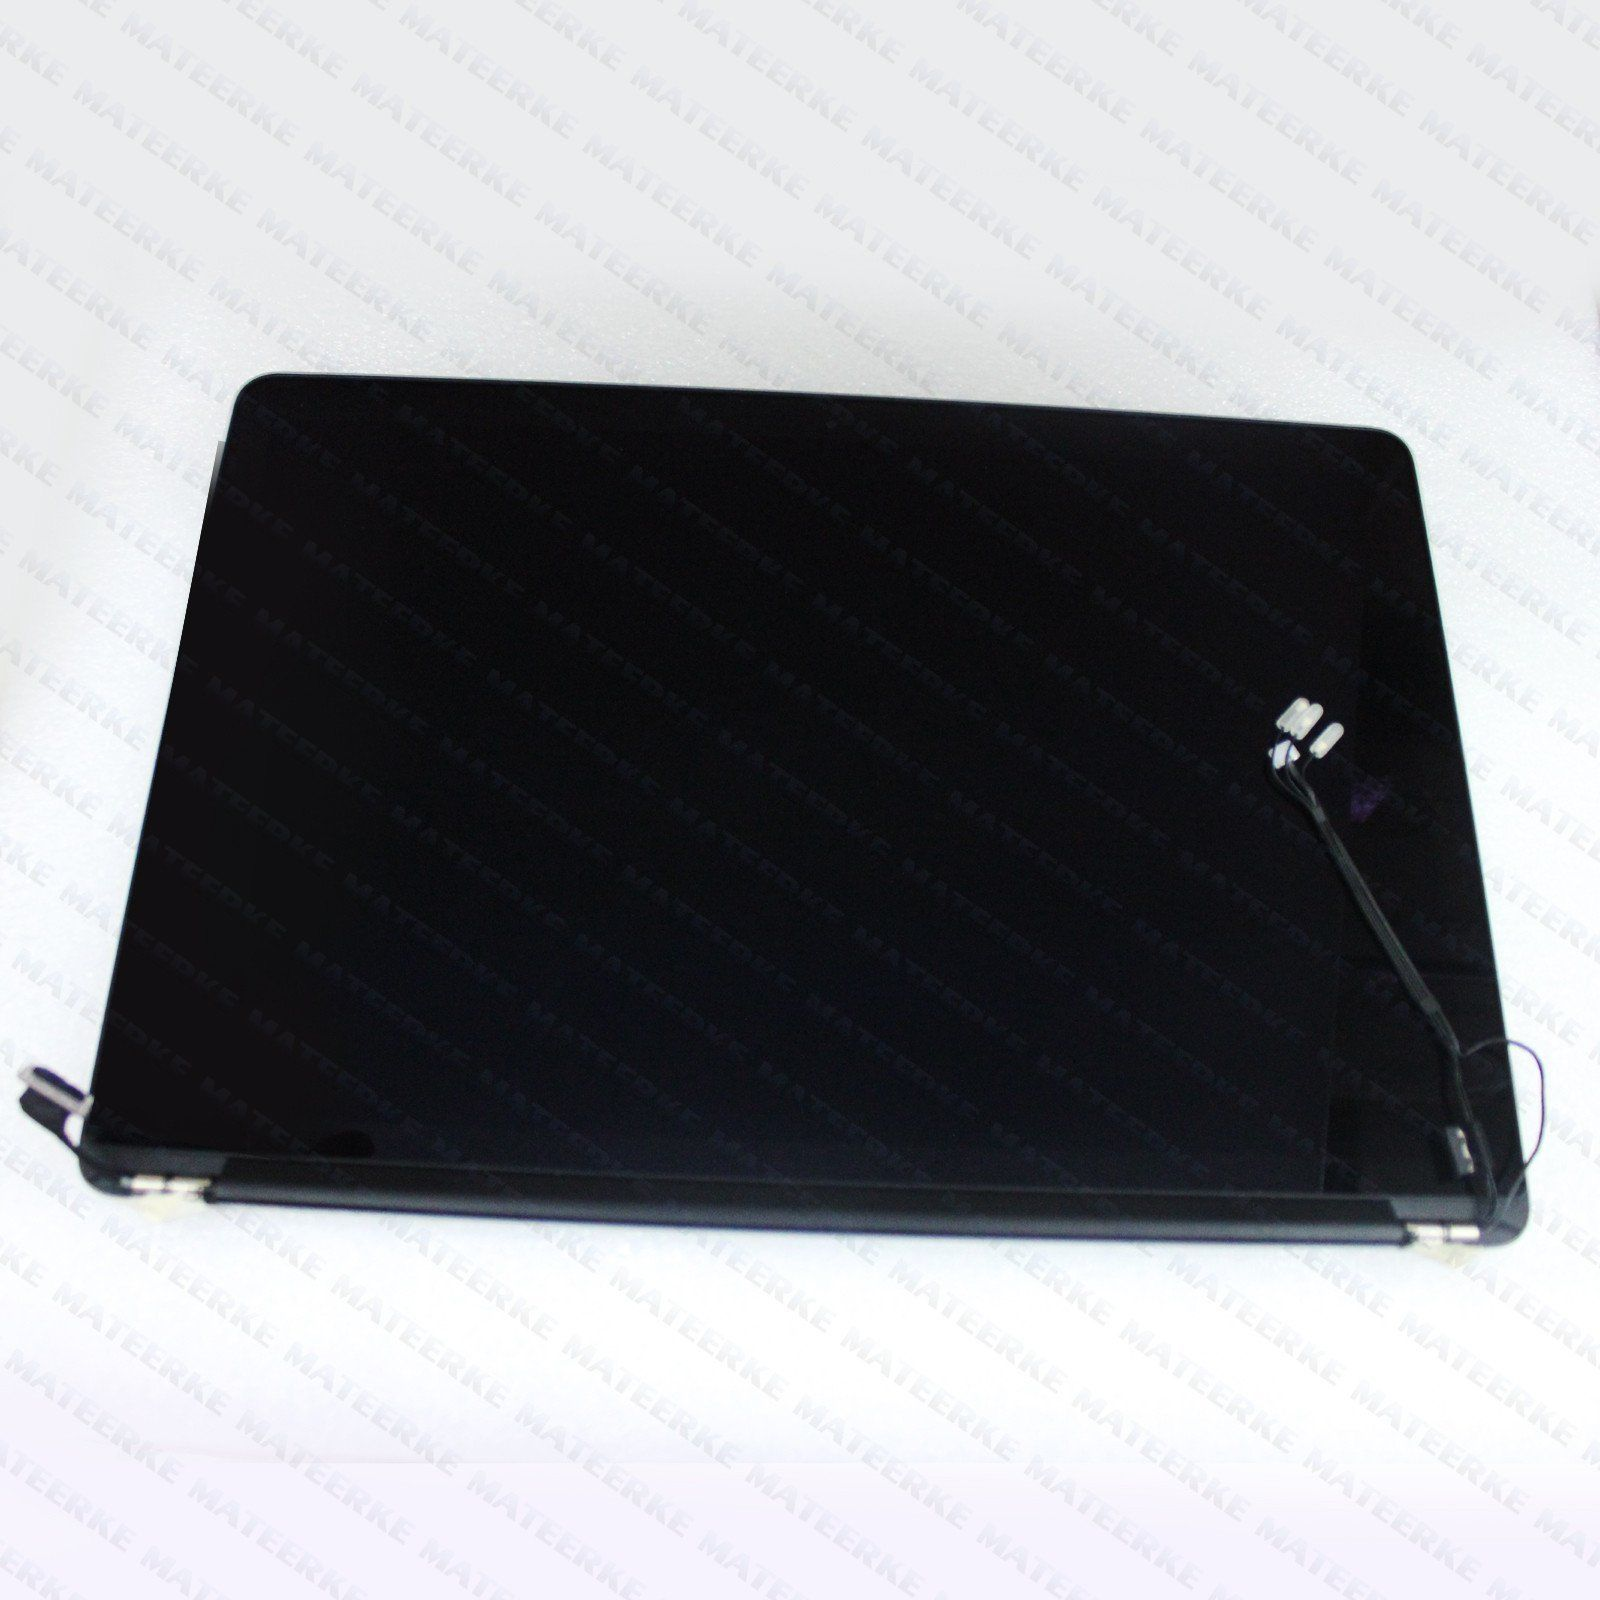 "New Display Full LCD Screen Assembly For Mid 2012 MacBook Pro 15"" A1398 Retina"